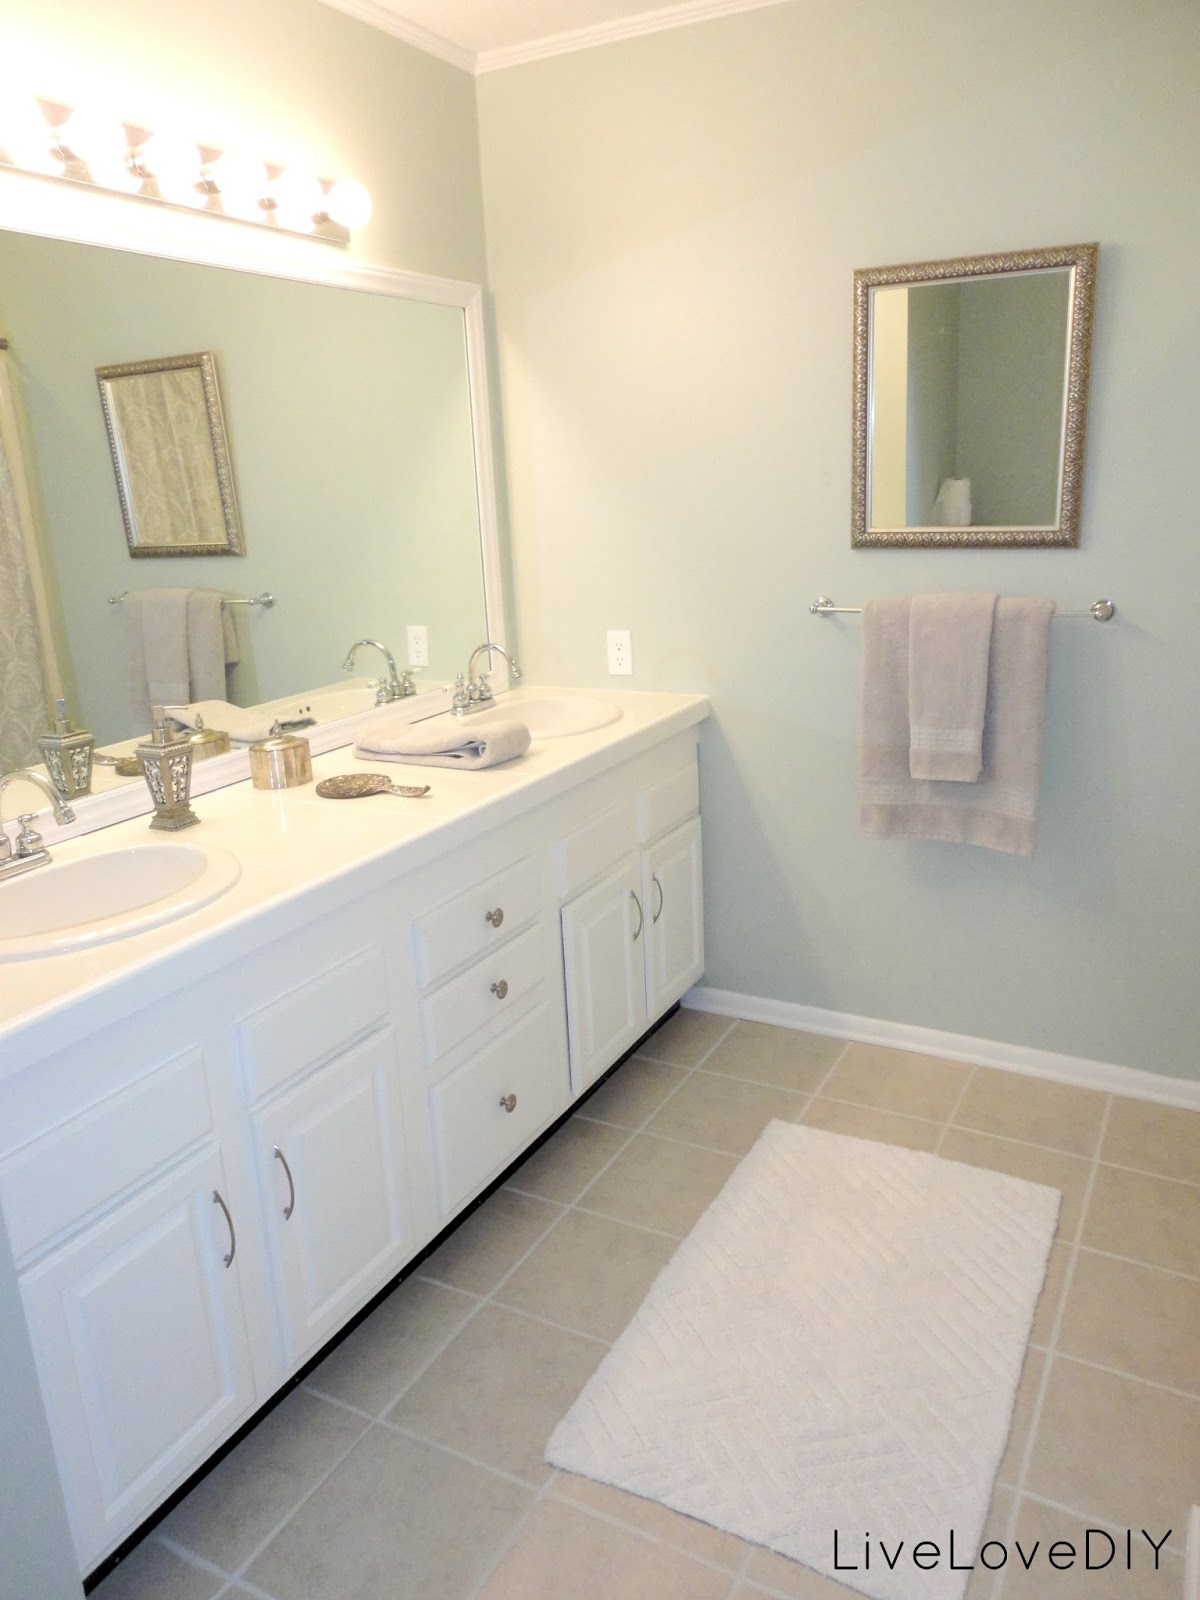 LiveLoveDIY: Bathroom Ideas: How To Right A Wrong